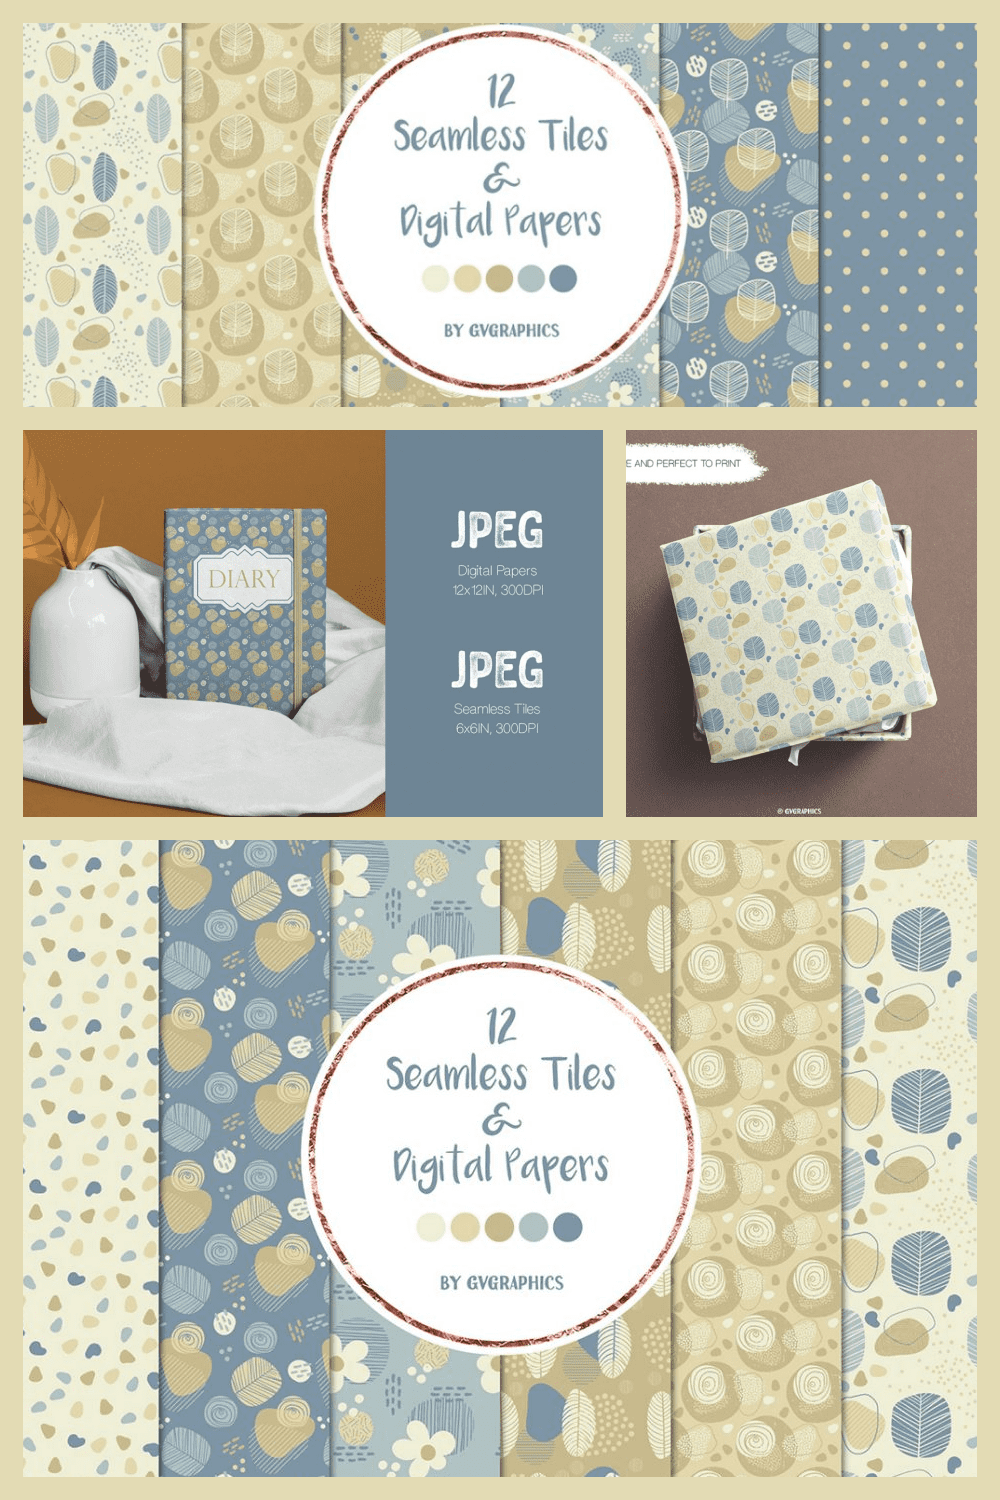 Doodle Nature Seamless Tiles & Digital Papers, Blue and Brown backgrounds - MasterBundles - Pinterest Collage Image.